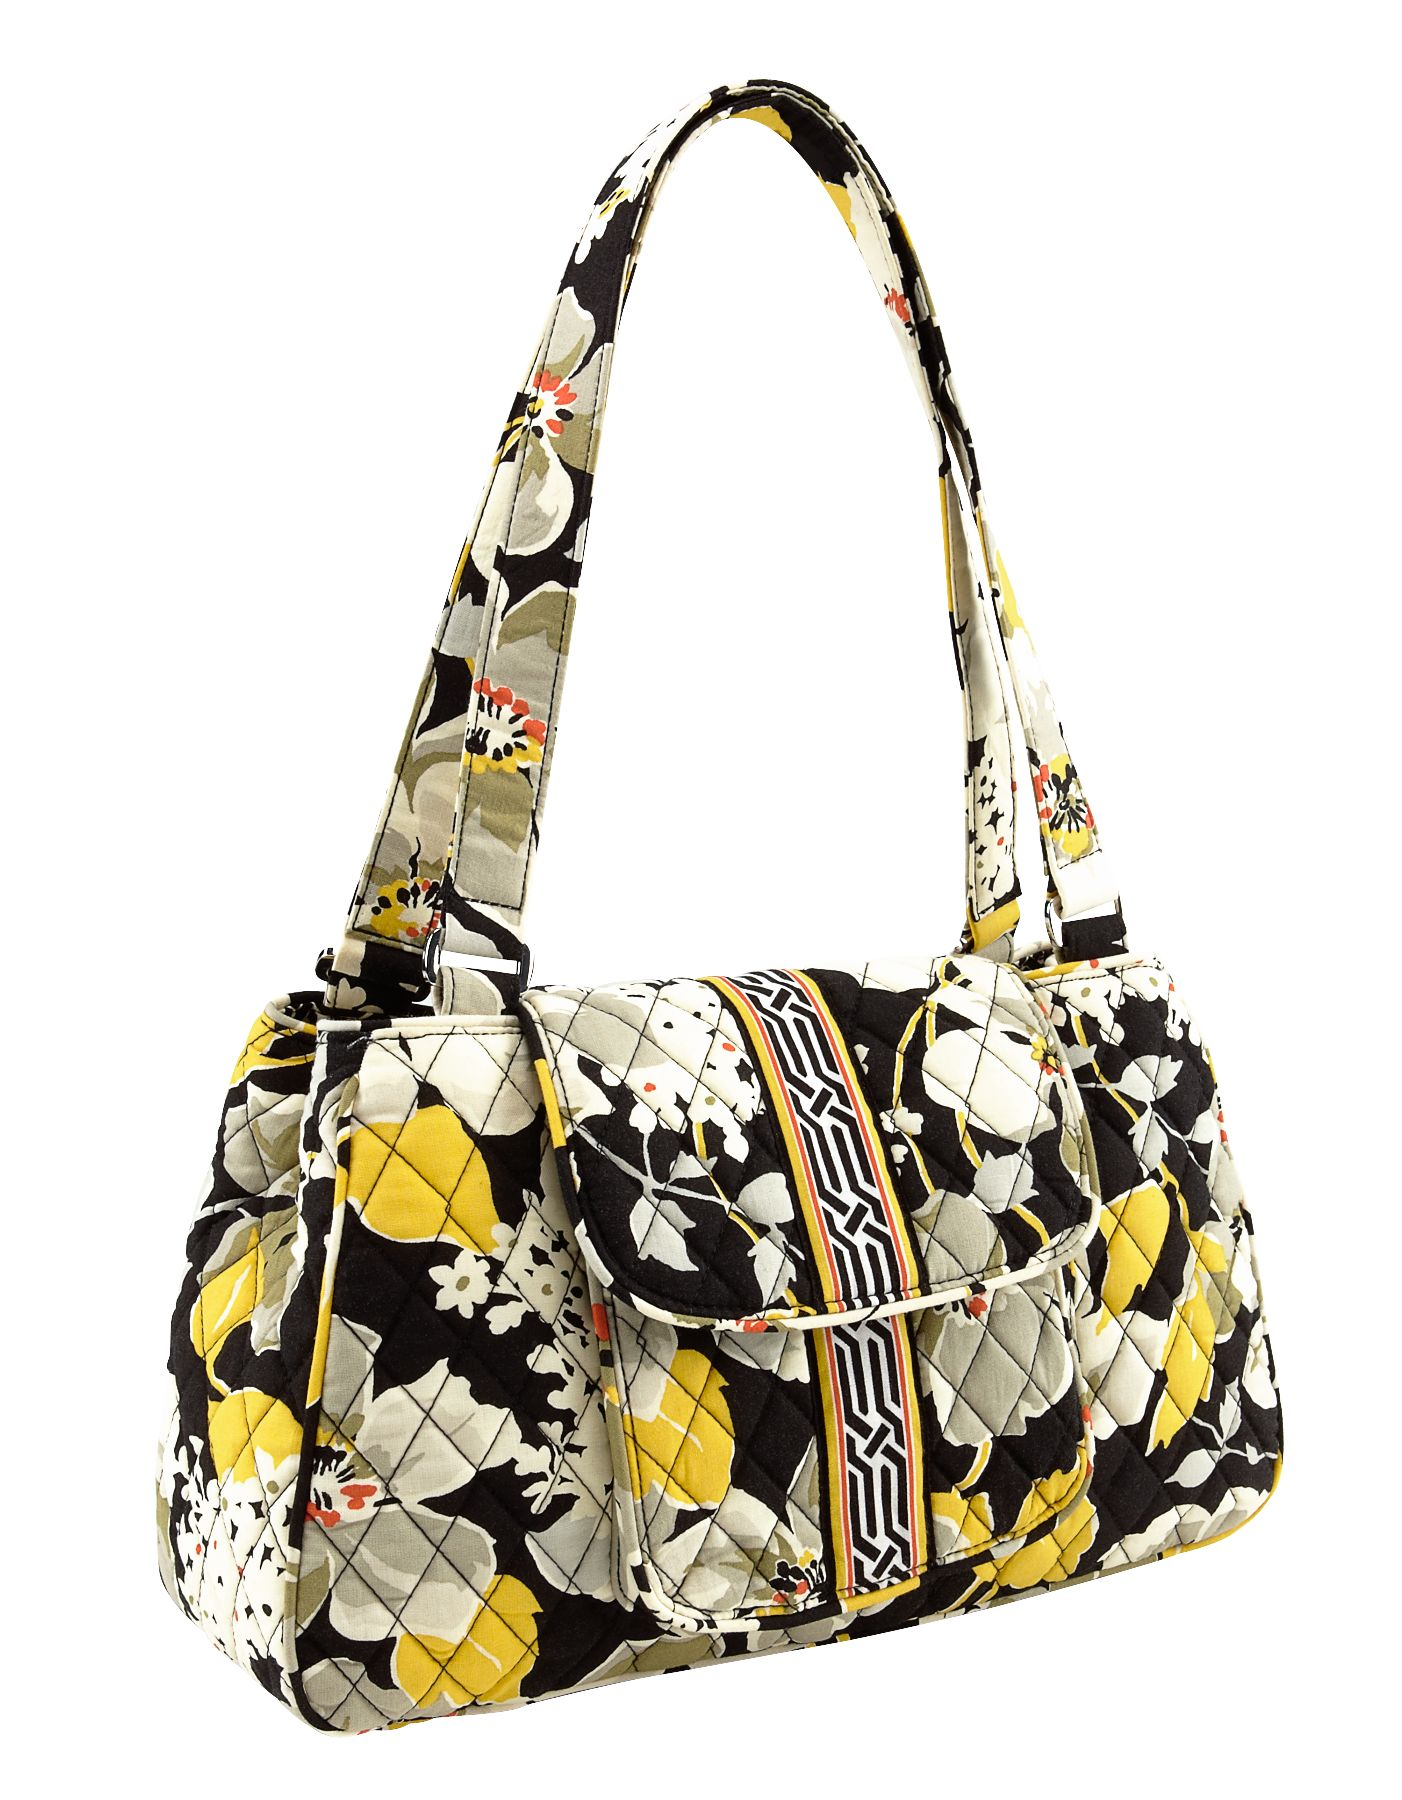 Now trending on your arm, Disney fashion handbags and more from the Disney Parks Collection by Vera Bradley. Shop for Disney handbags, totes and more at Disney Store.